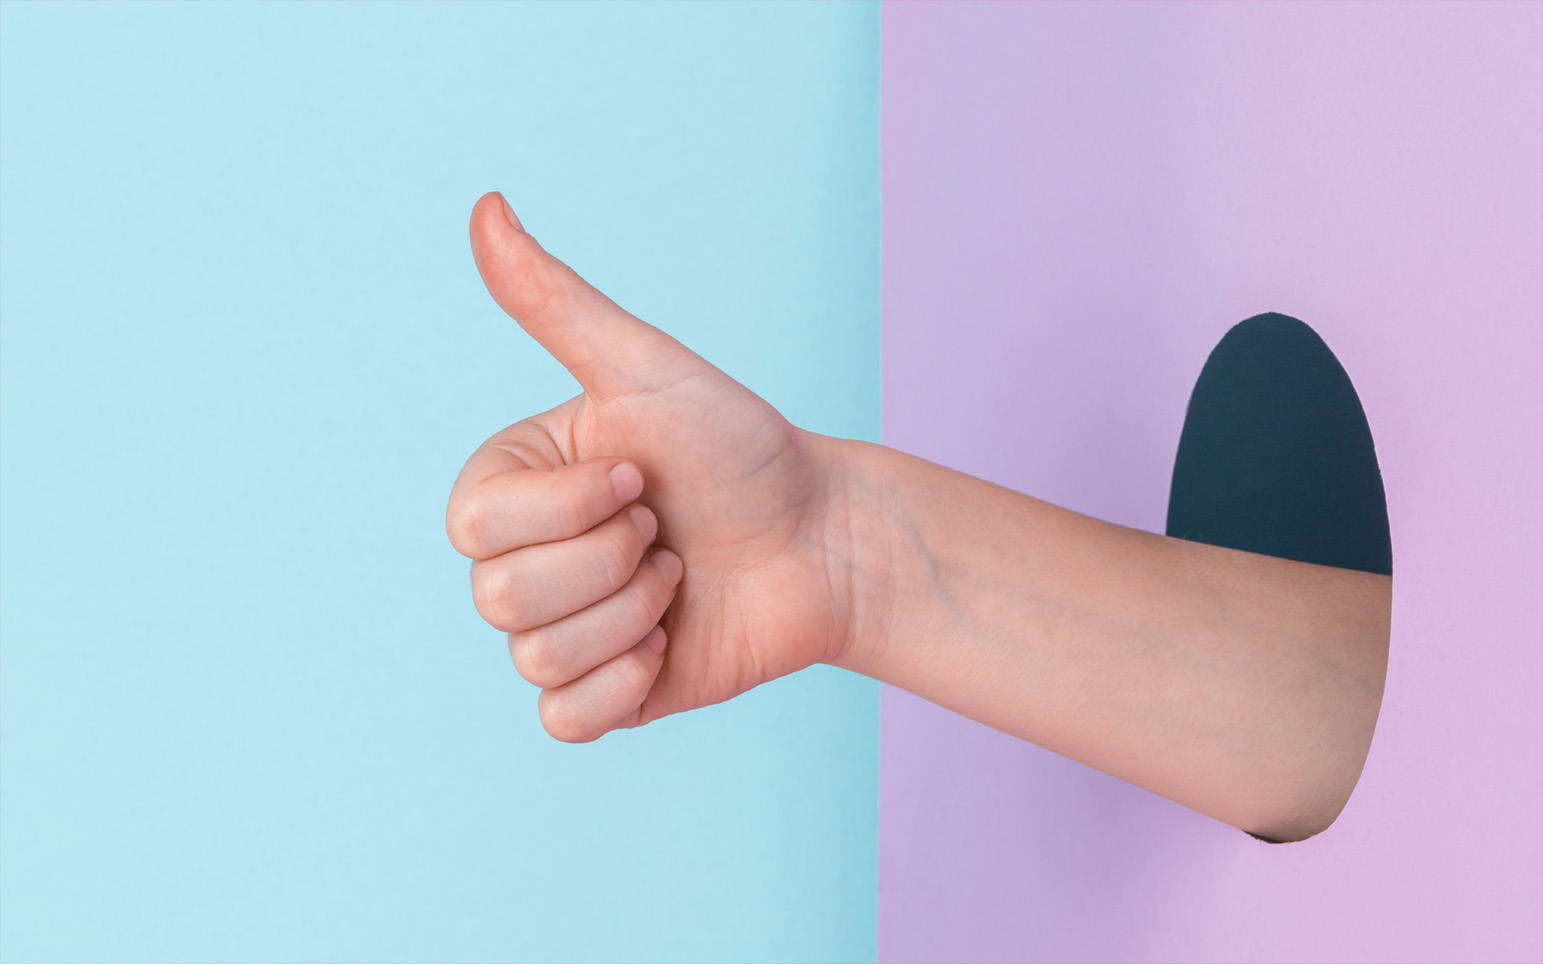 thumbs up emerging from circular hole in pink wall